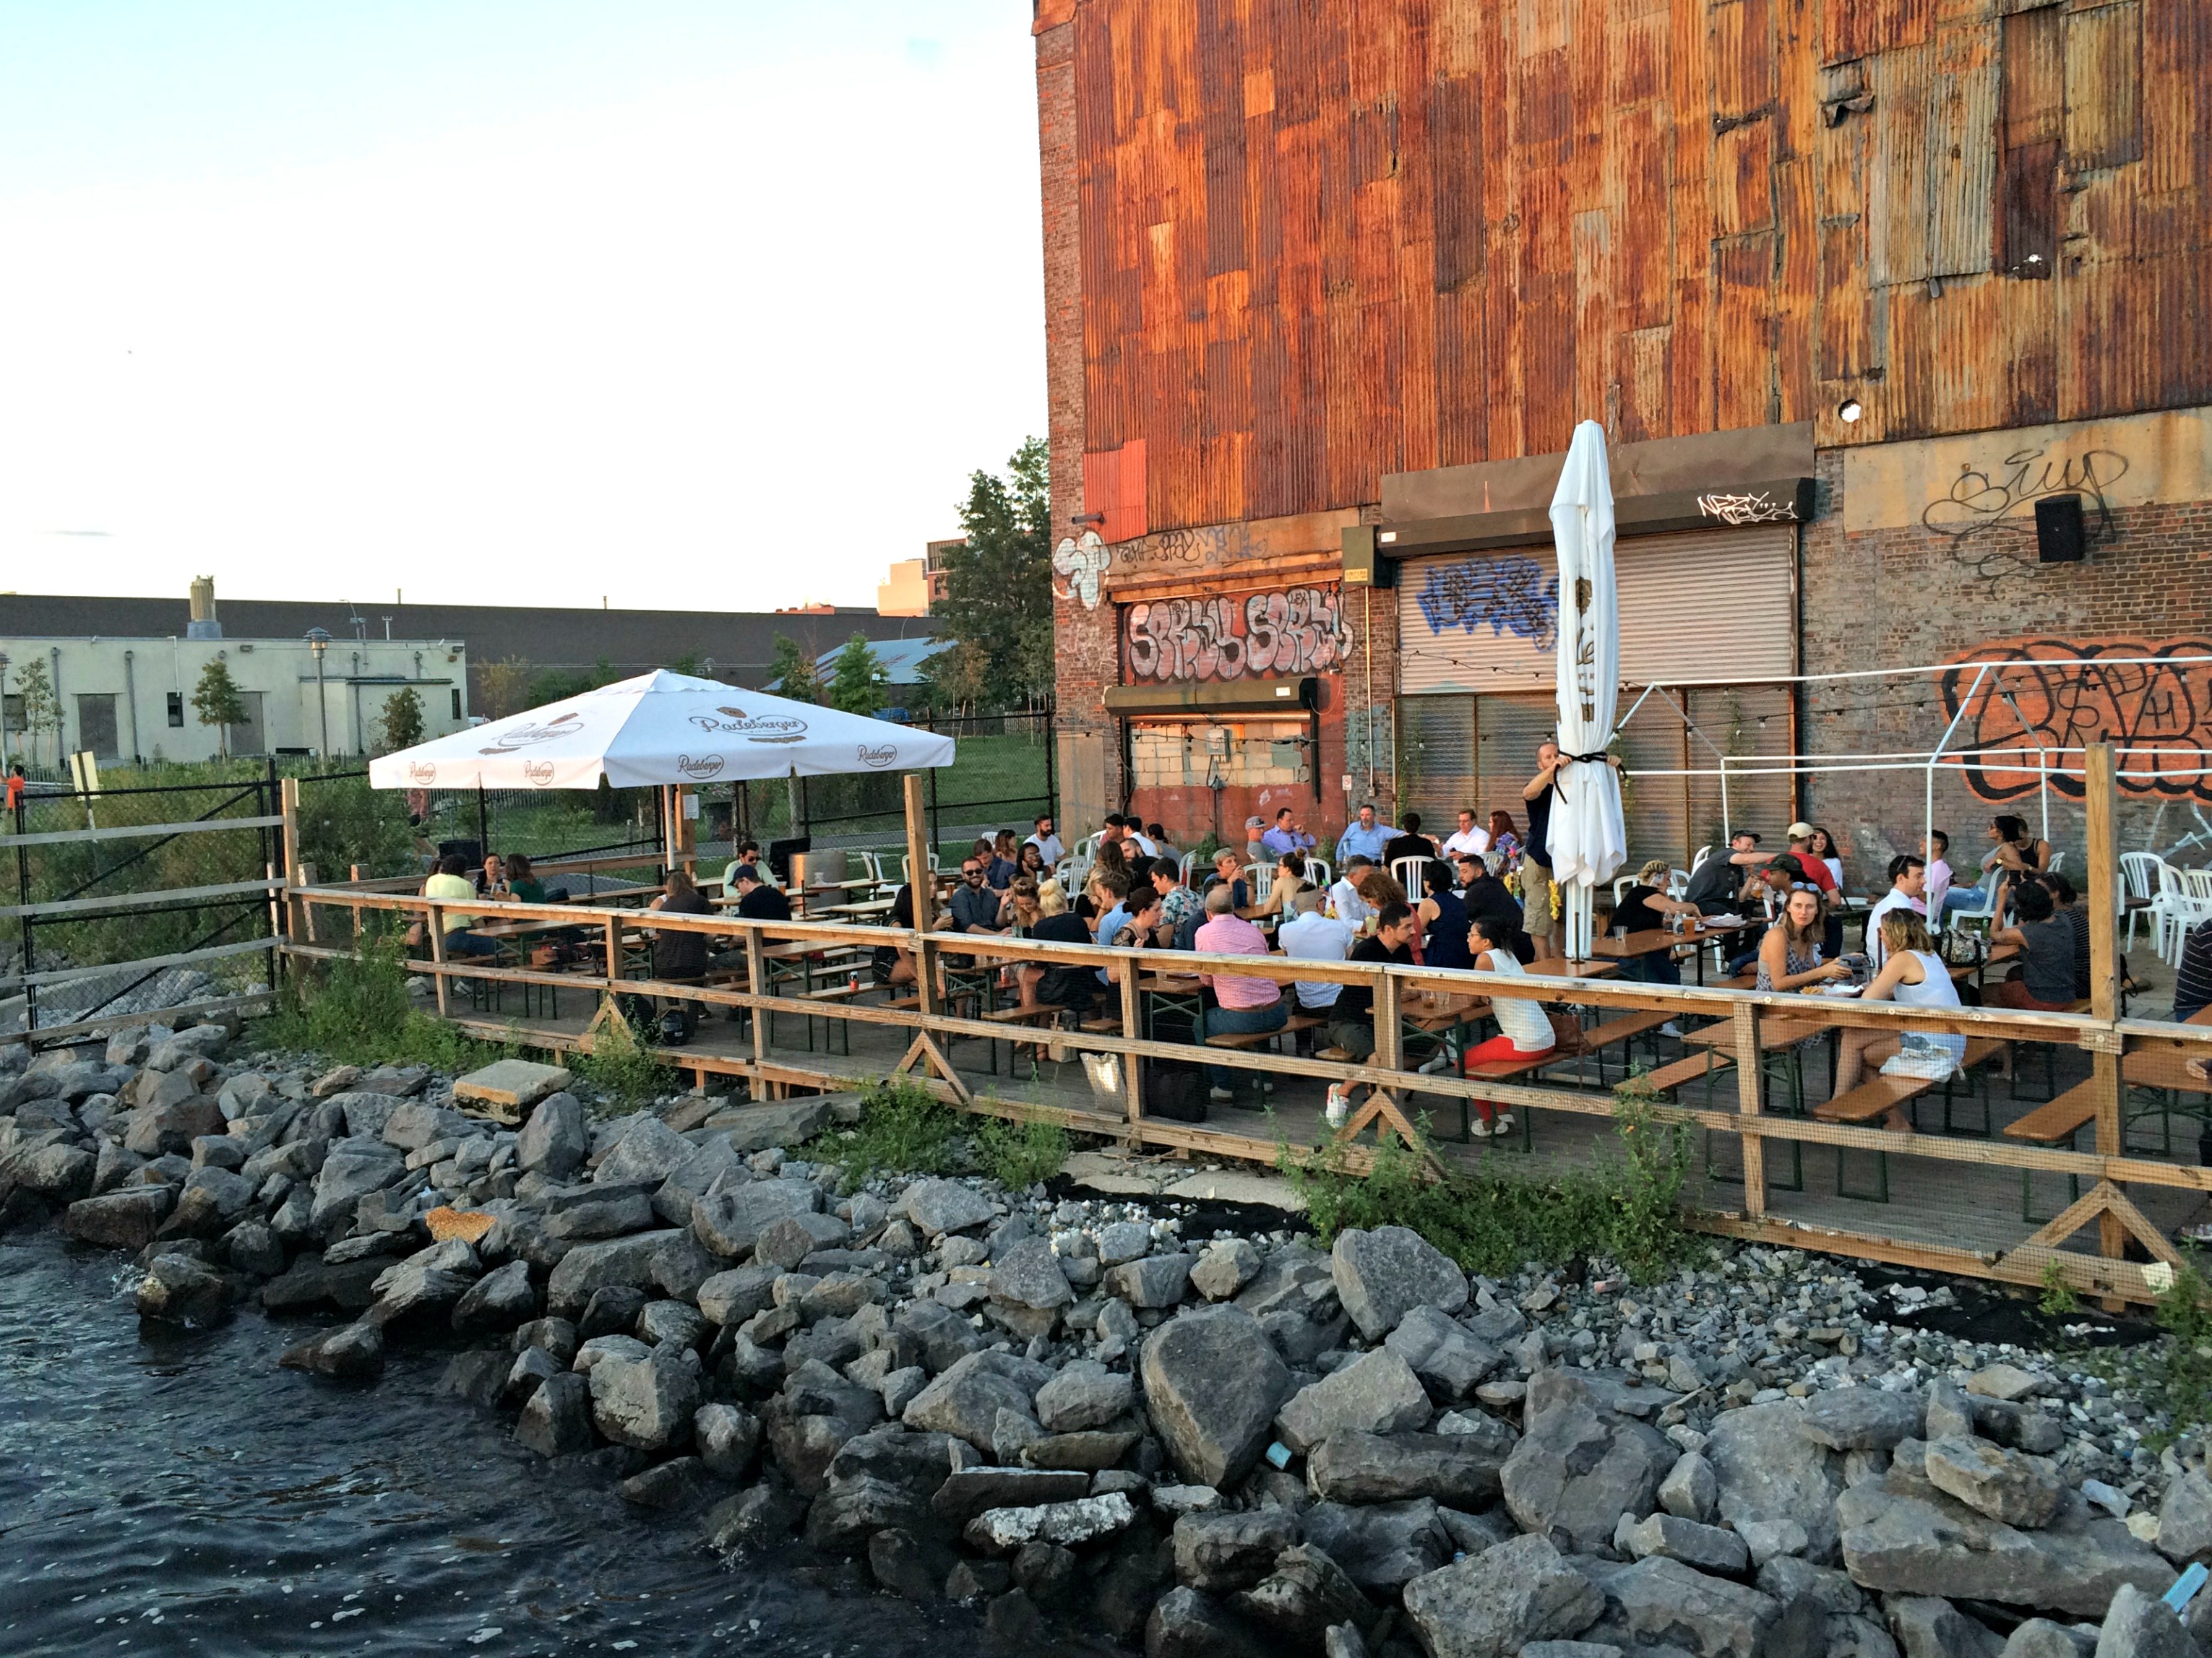 Brooklyn Barge seating area